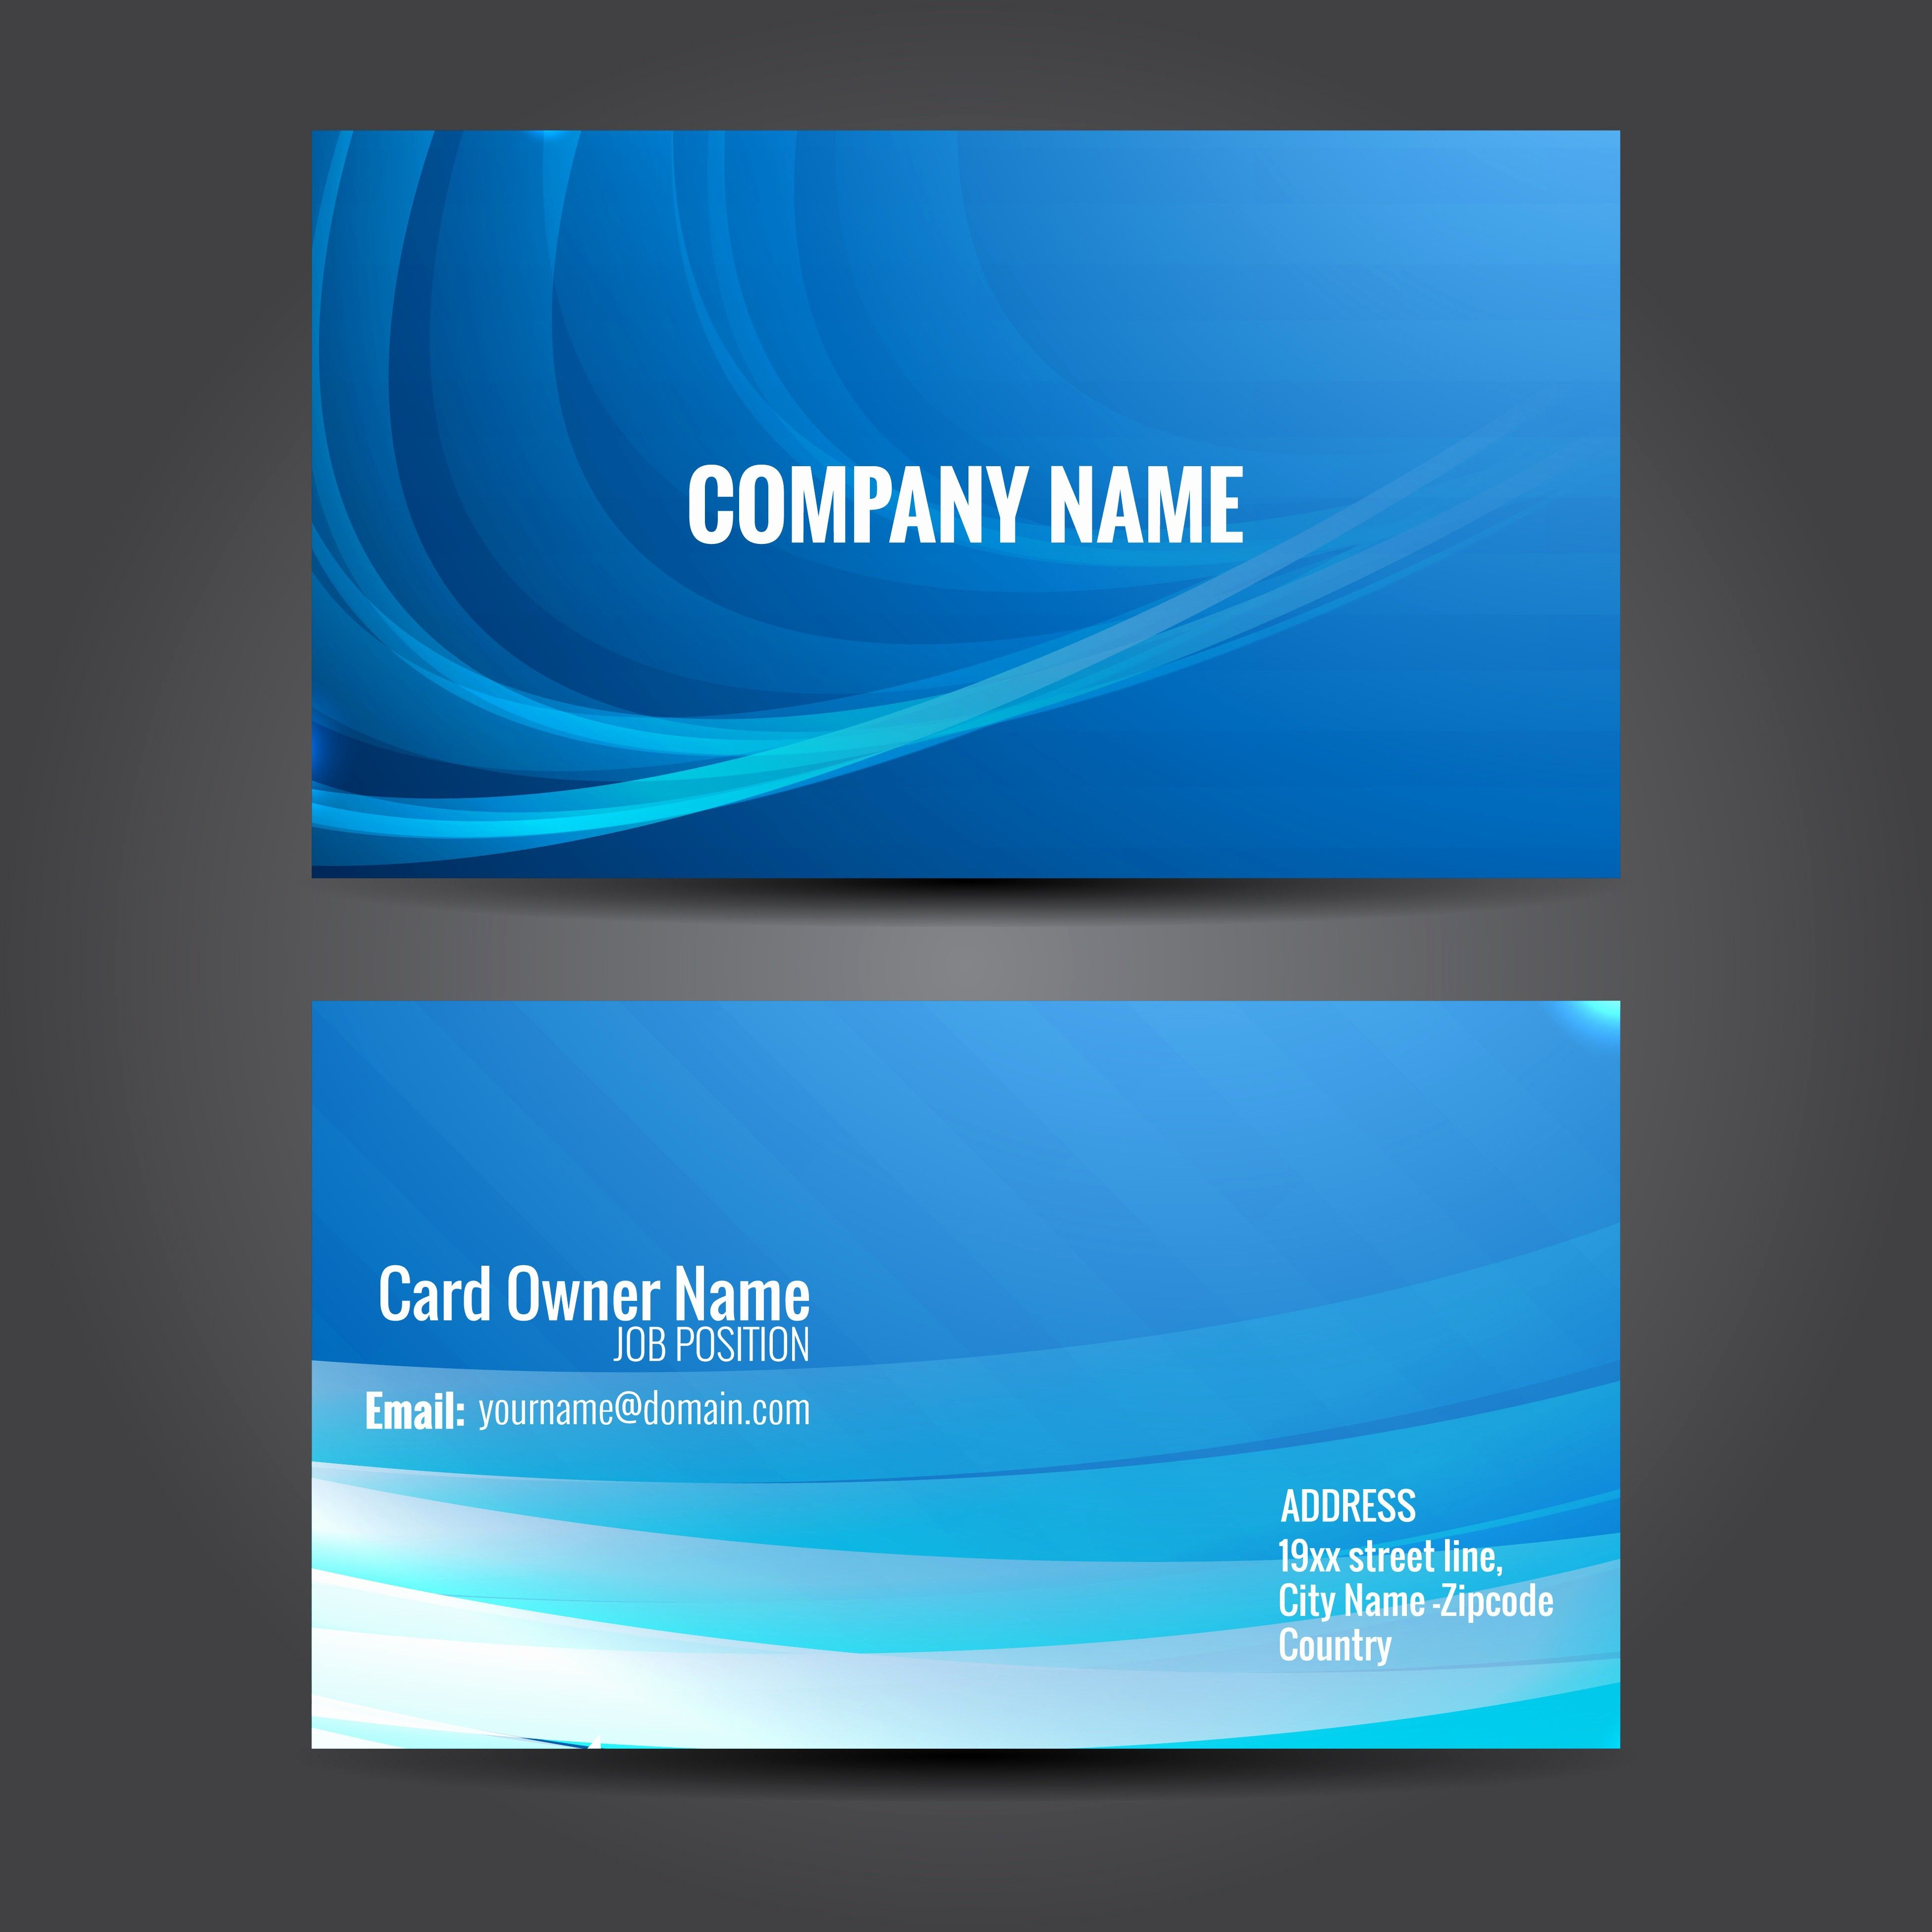 Blank Business Card Template Free Awesome Blank Business Cards Templates Free Downl Download Business Card Free Business Card Templates Visiting Card Templates